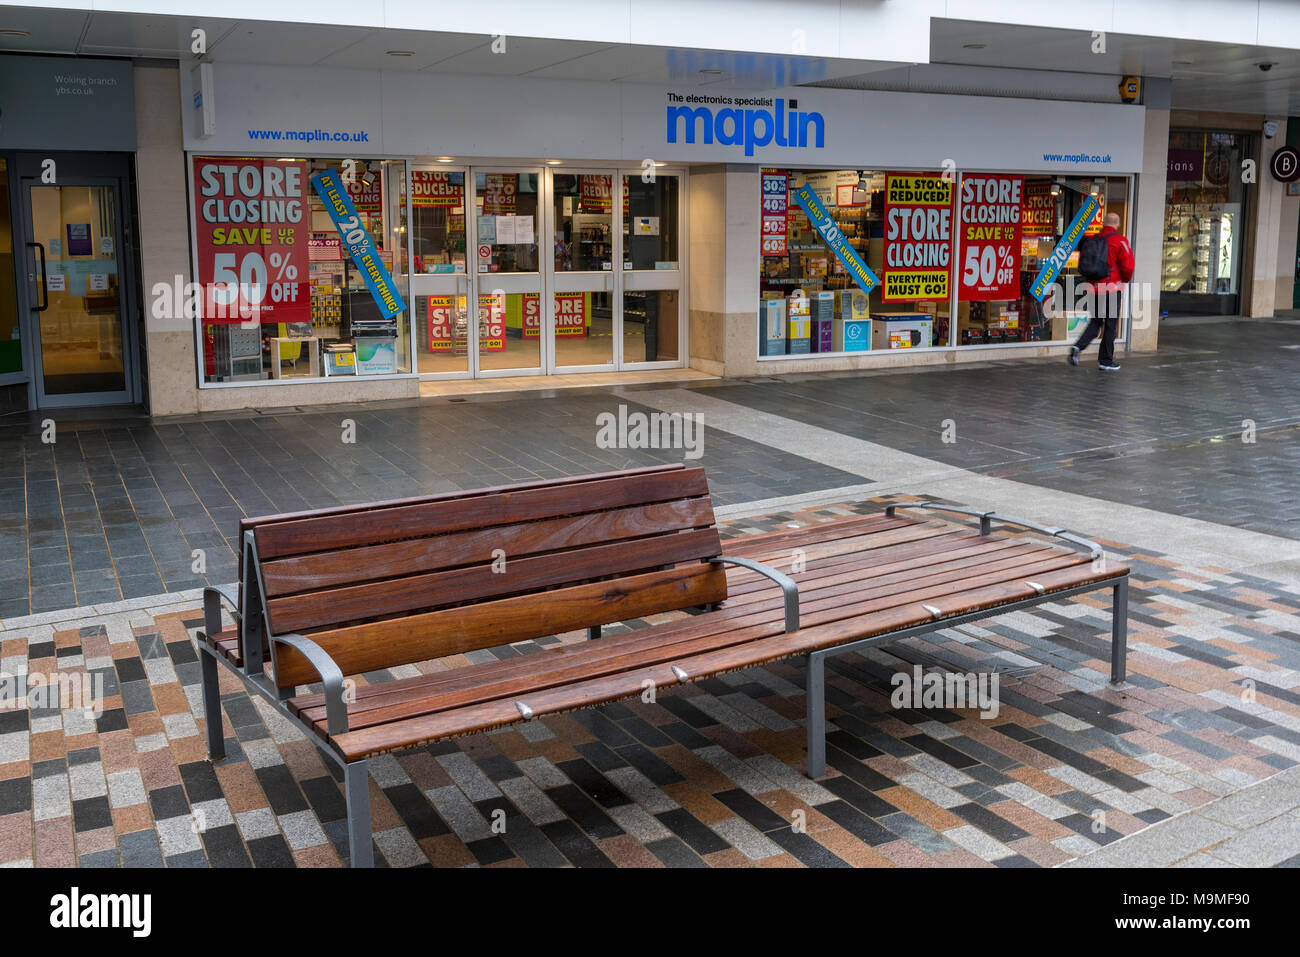 The marlins high street chain of electrical stores closing down. Victim of online sales and Brexit. High street shops losing money and mis-managed. Stock Photo